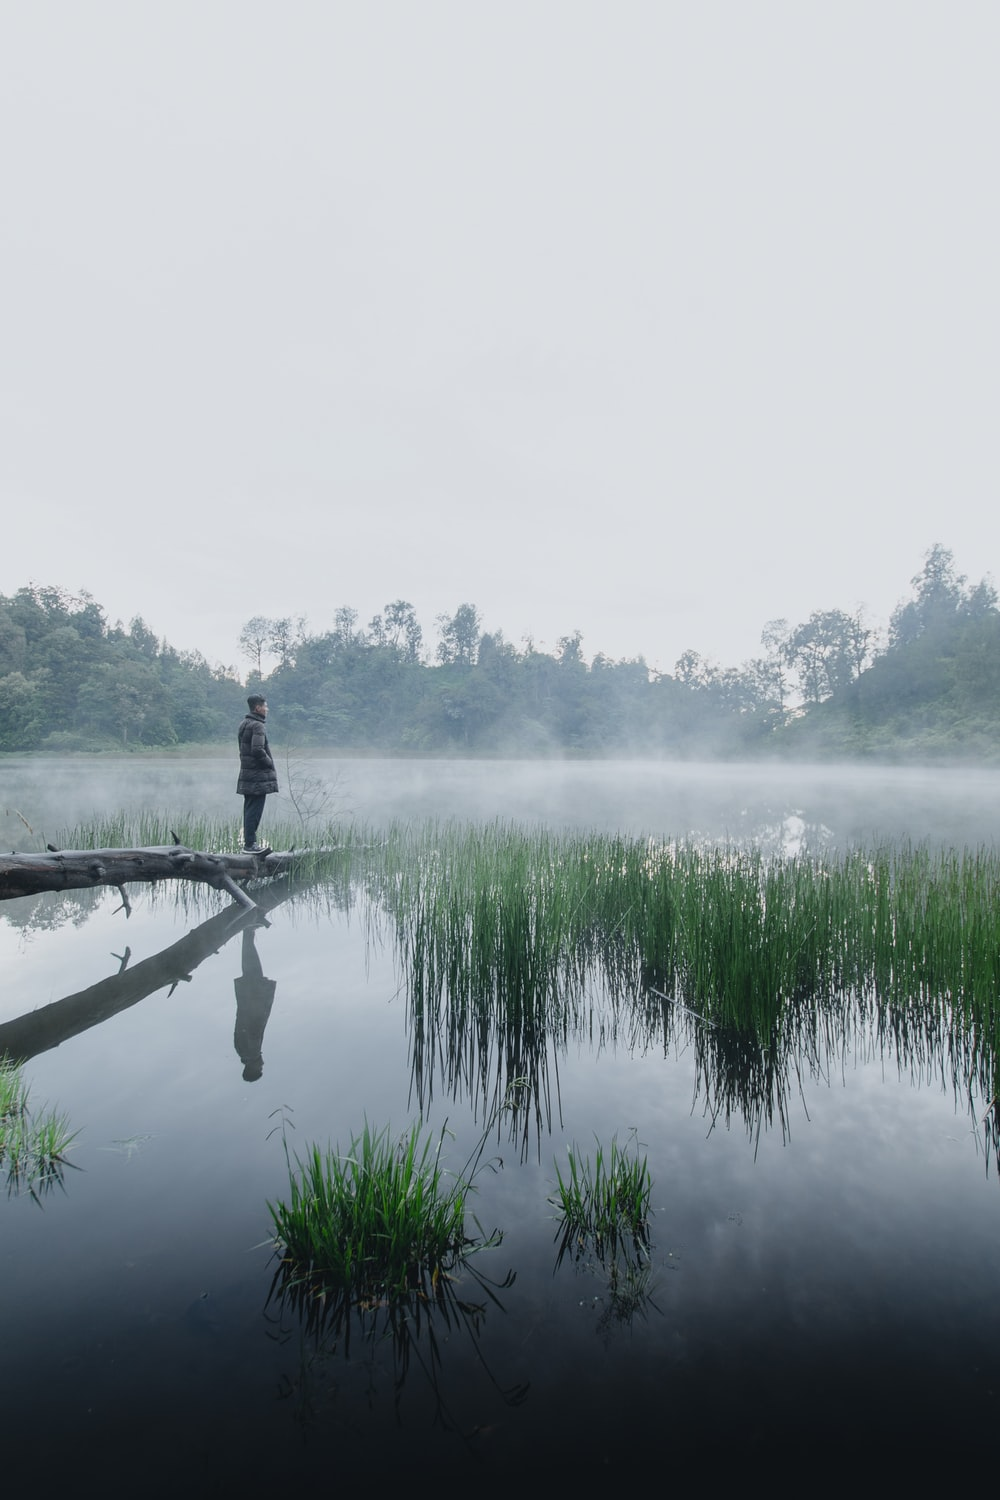 man in black jacket standing on brown wooden dock over body of water during foggy weather